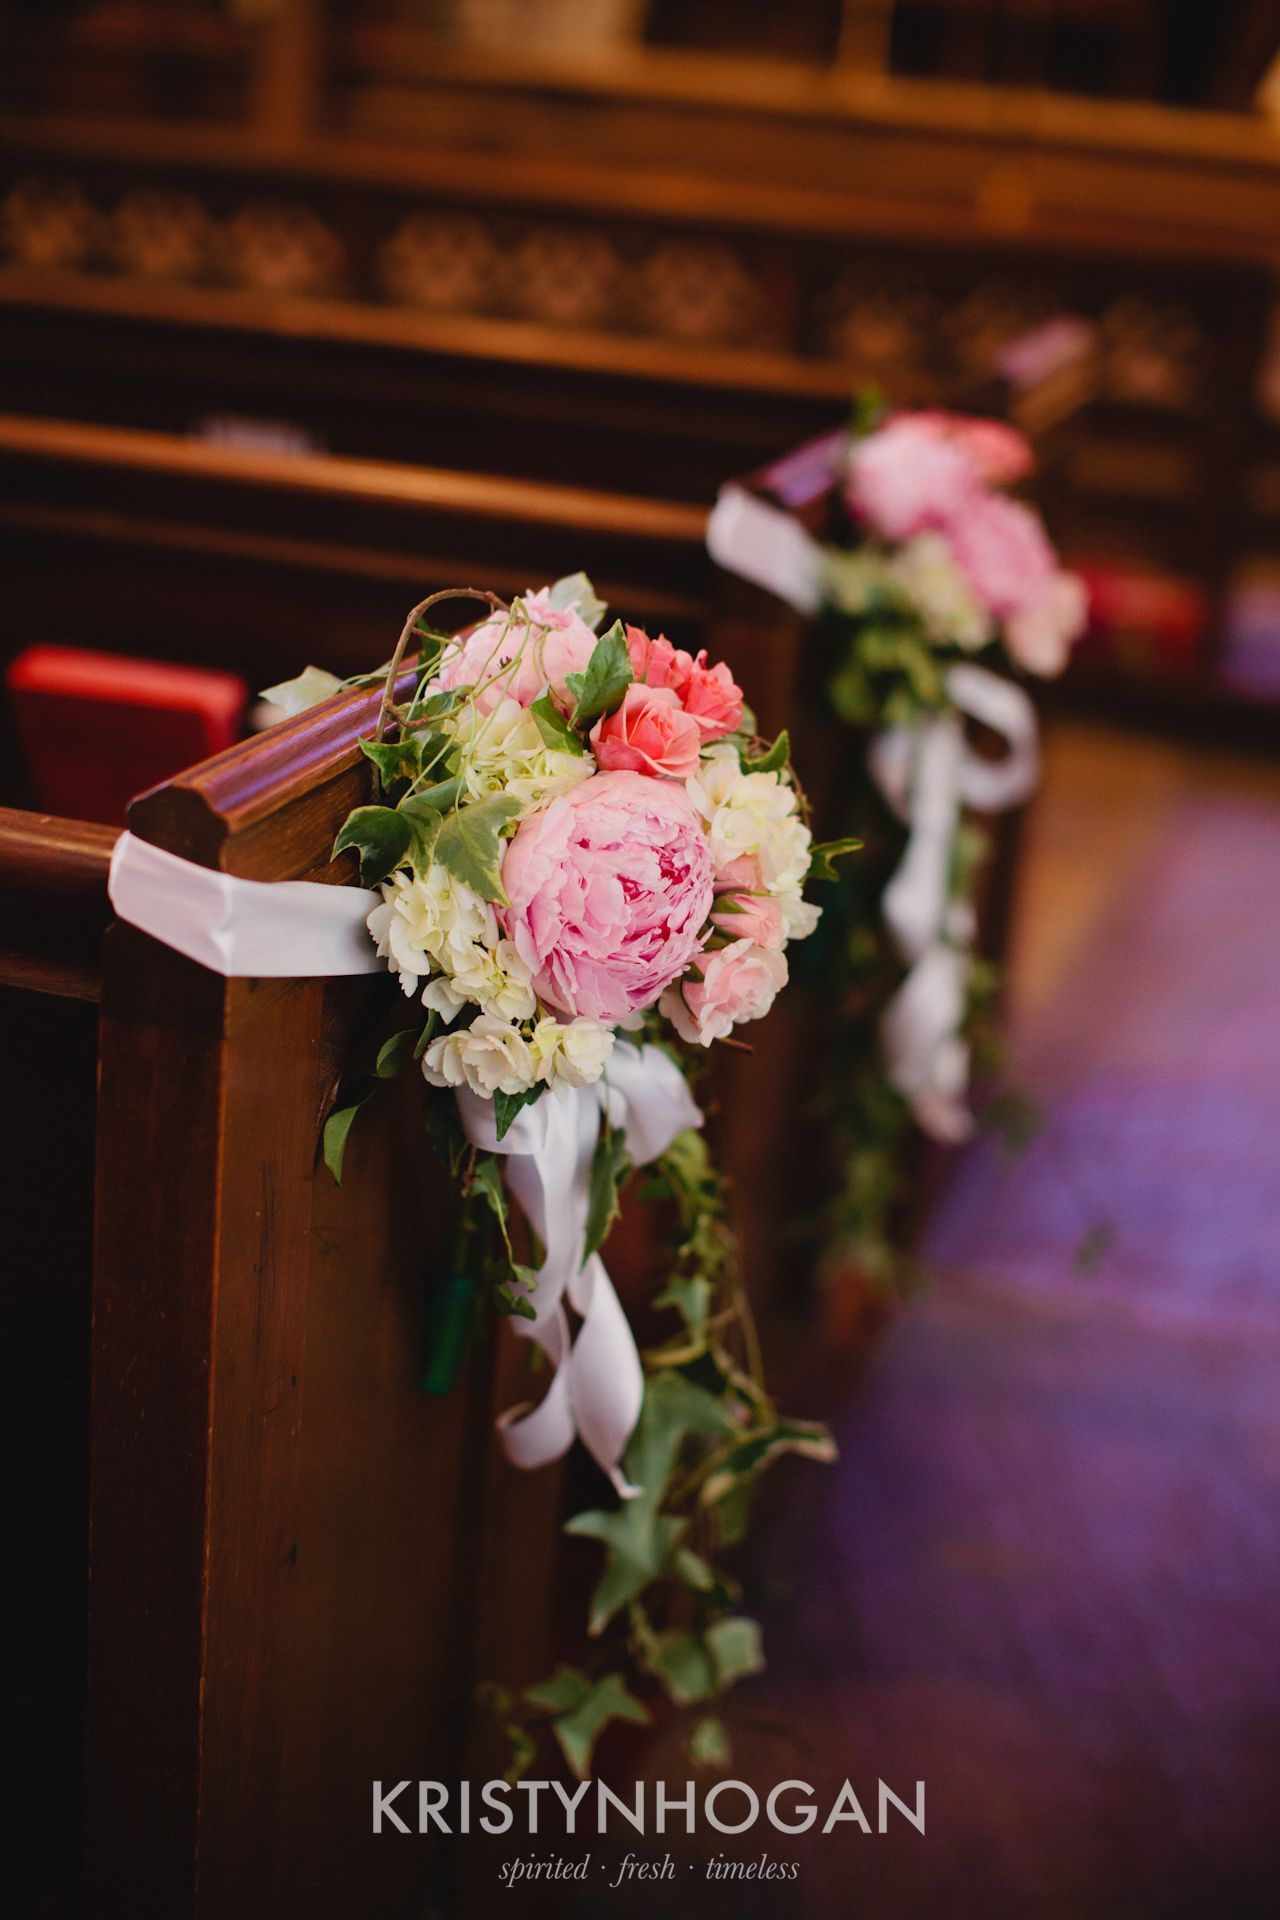 Pink Peony Flowers on Church Pews, Wedding Ceremony in